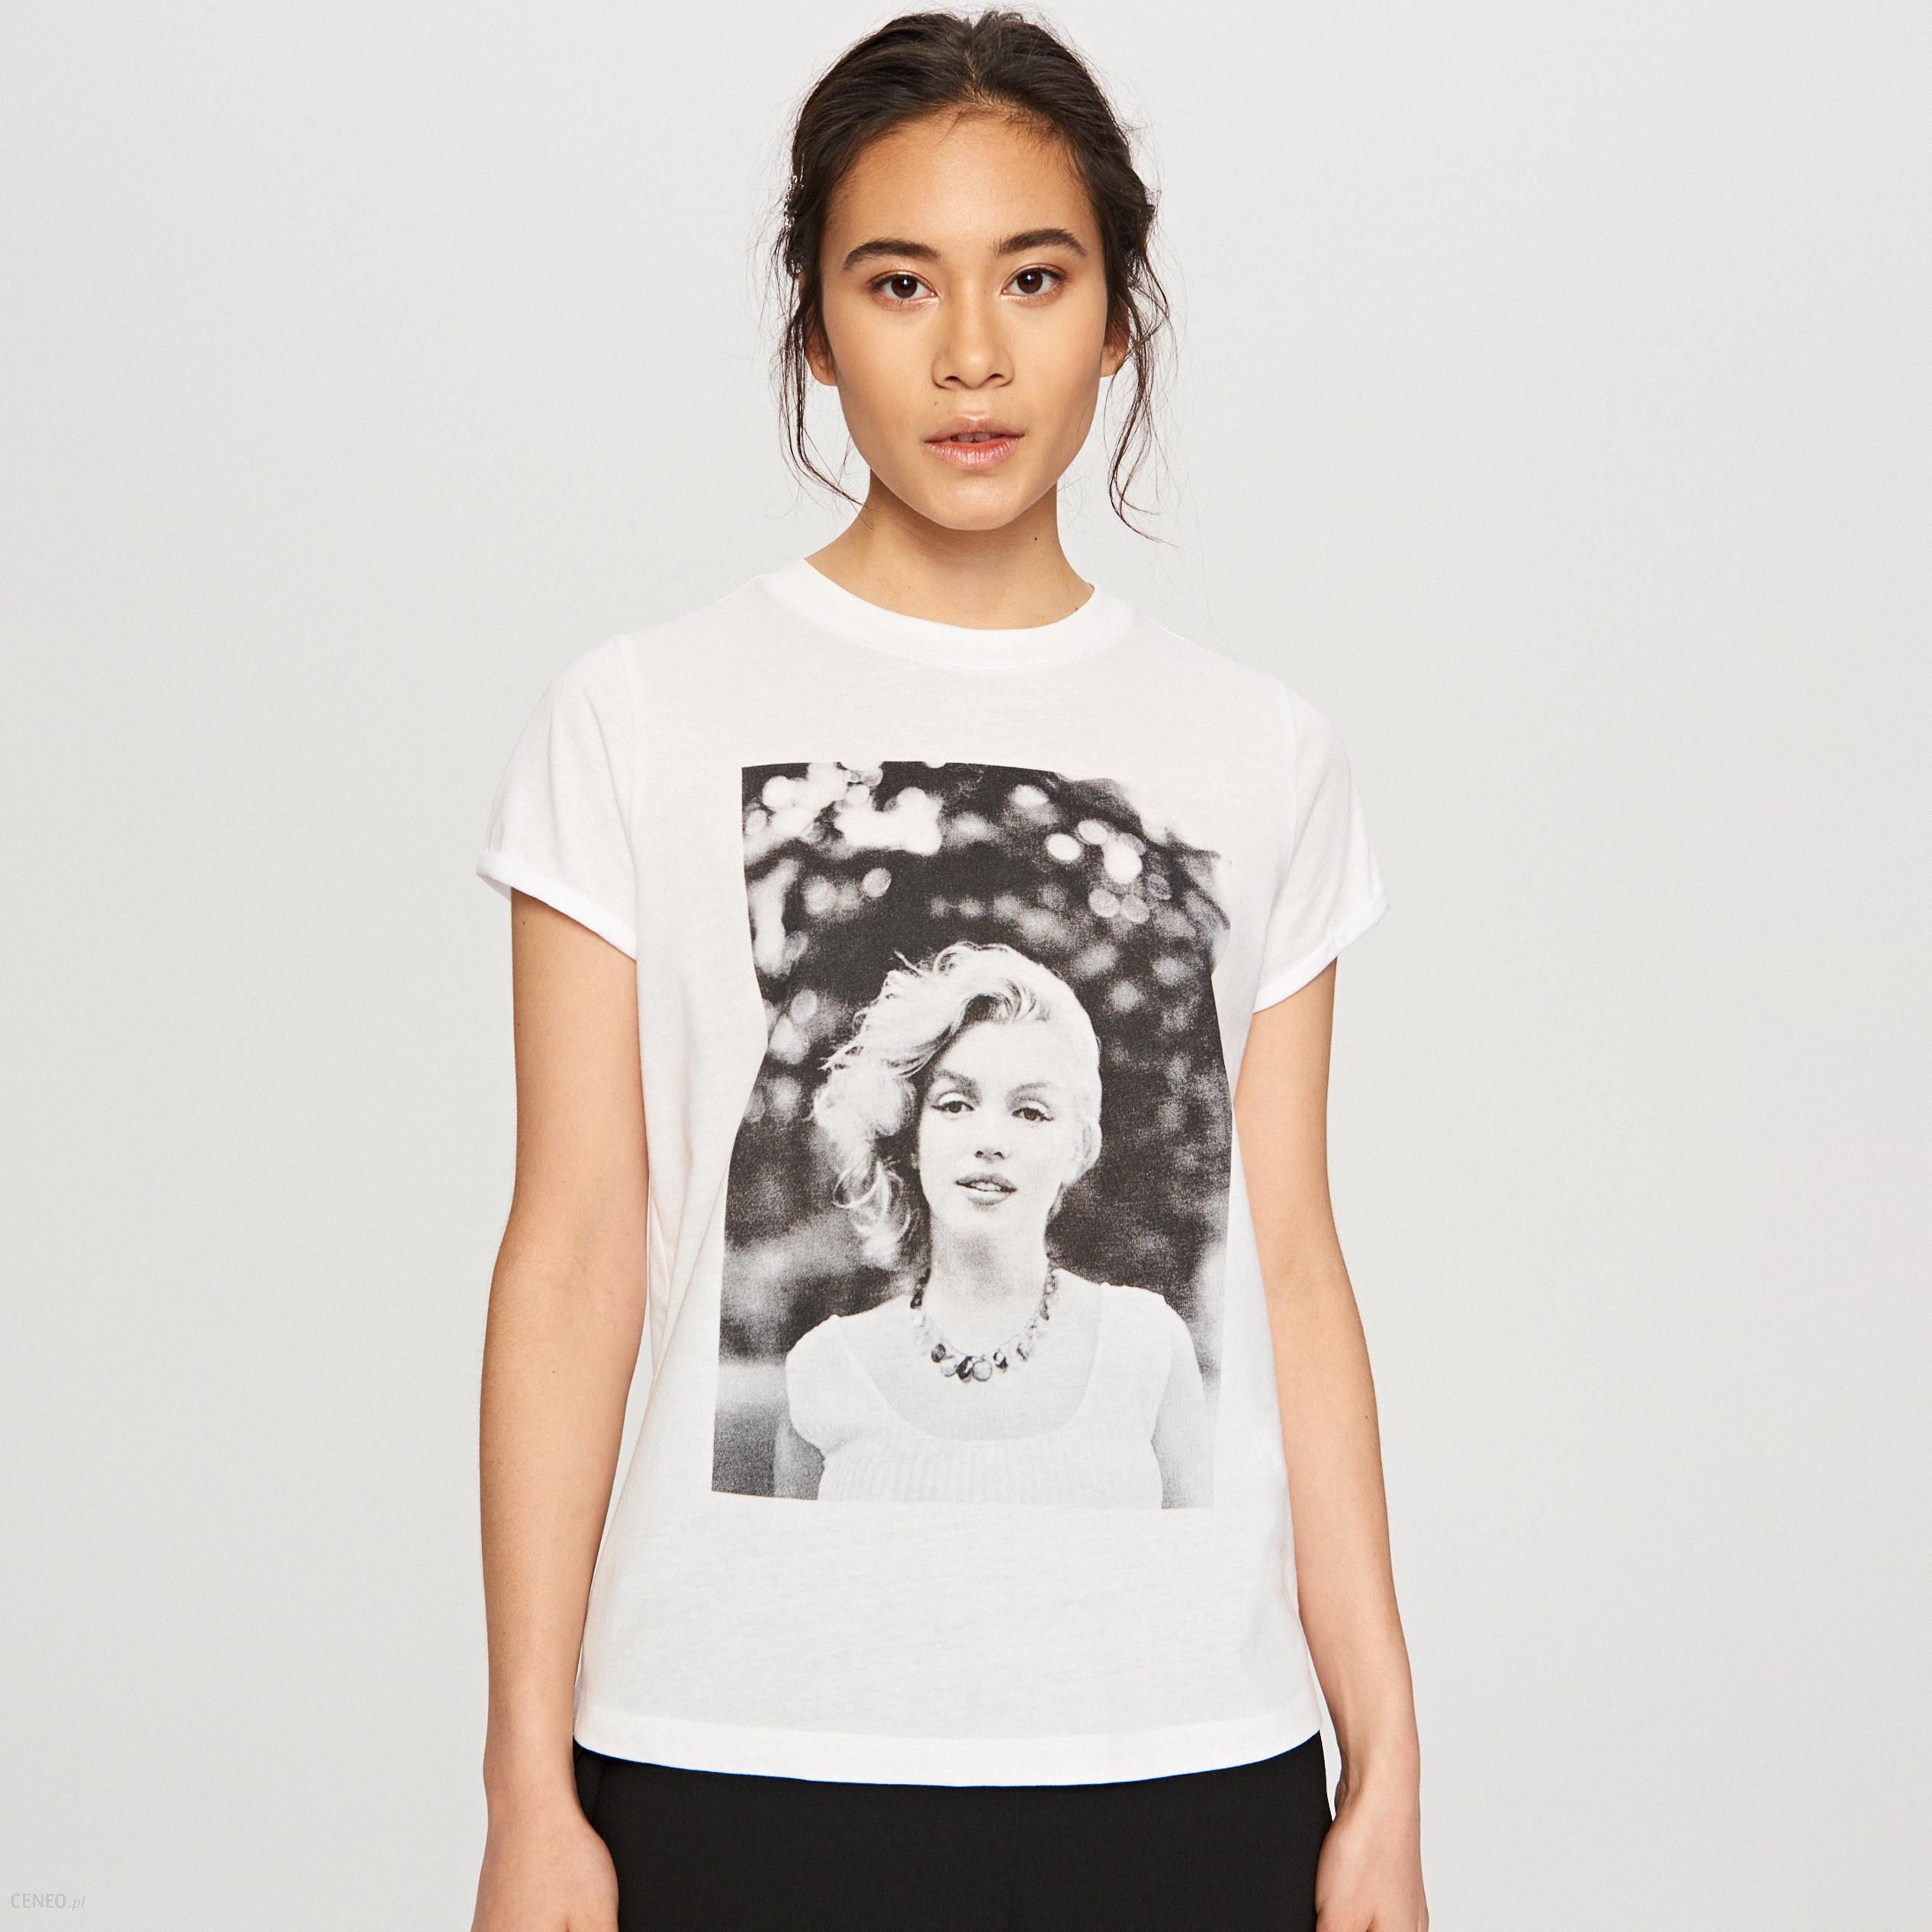 9a245234c6f51e Reserved - T-shirt marilyn monroe - Biały - Ceny i opinie - Ceneo.pl